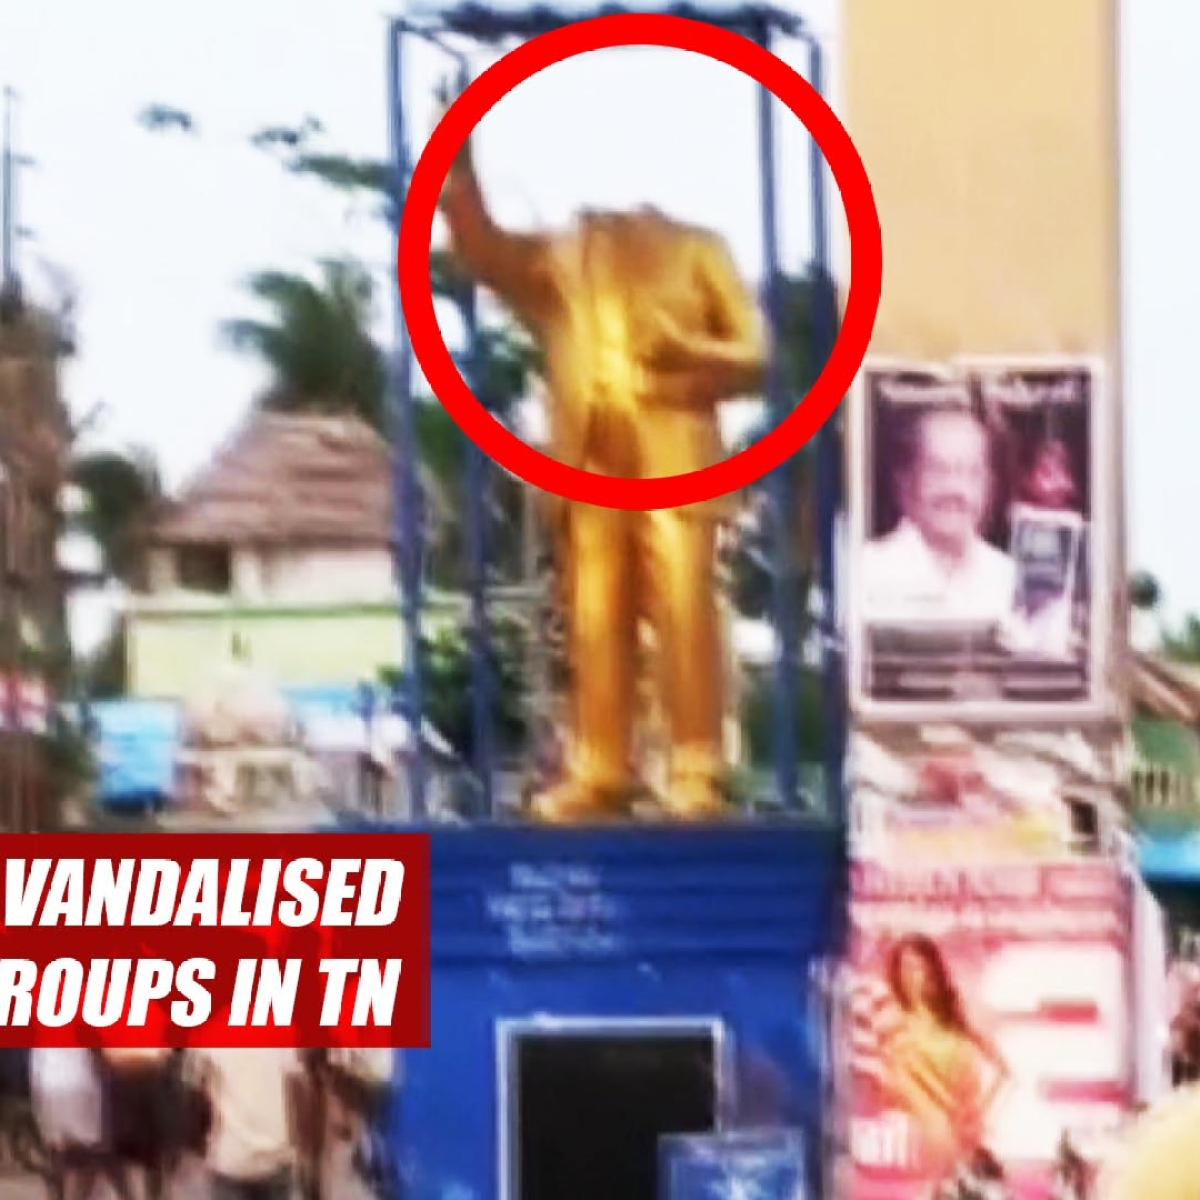 Ambedkar Statue Vandalised During Clashes Of Two Groups In TN's Vedaranyam